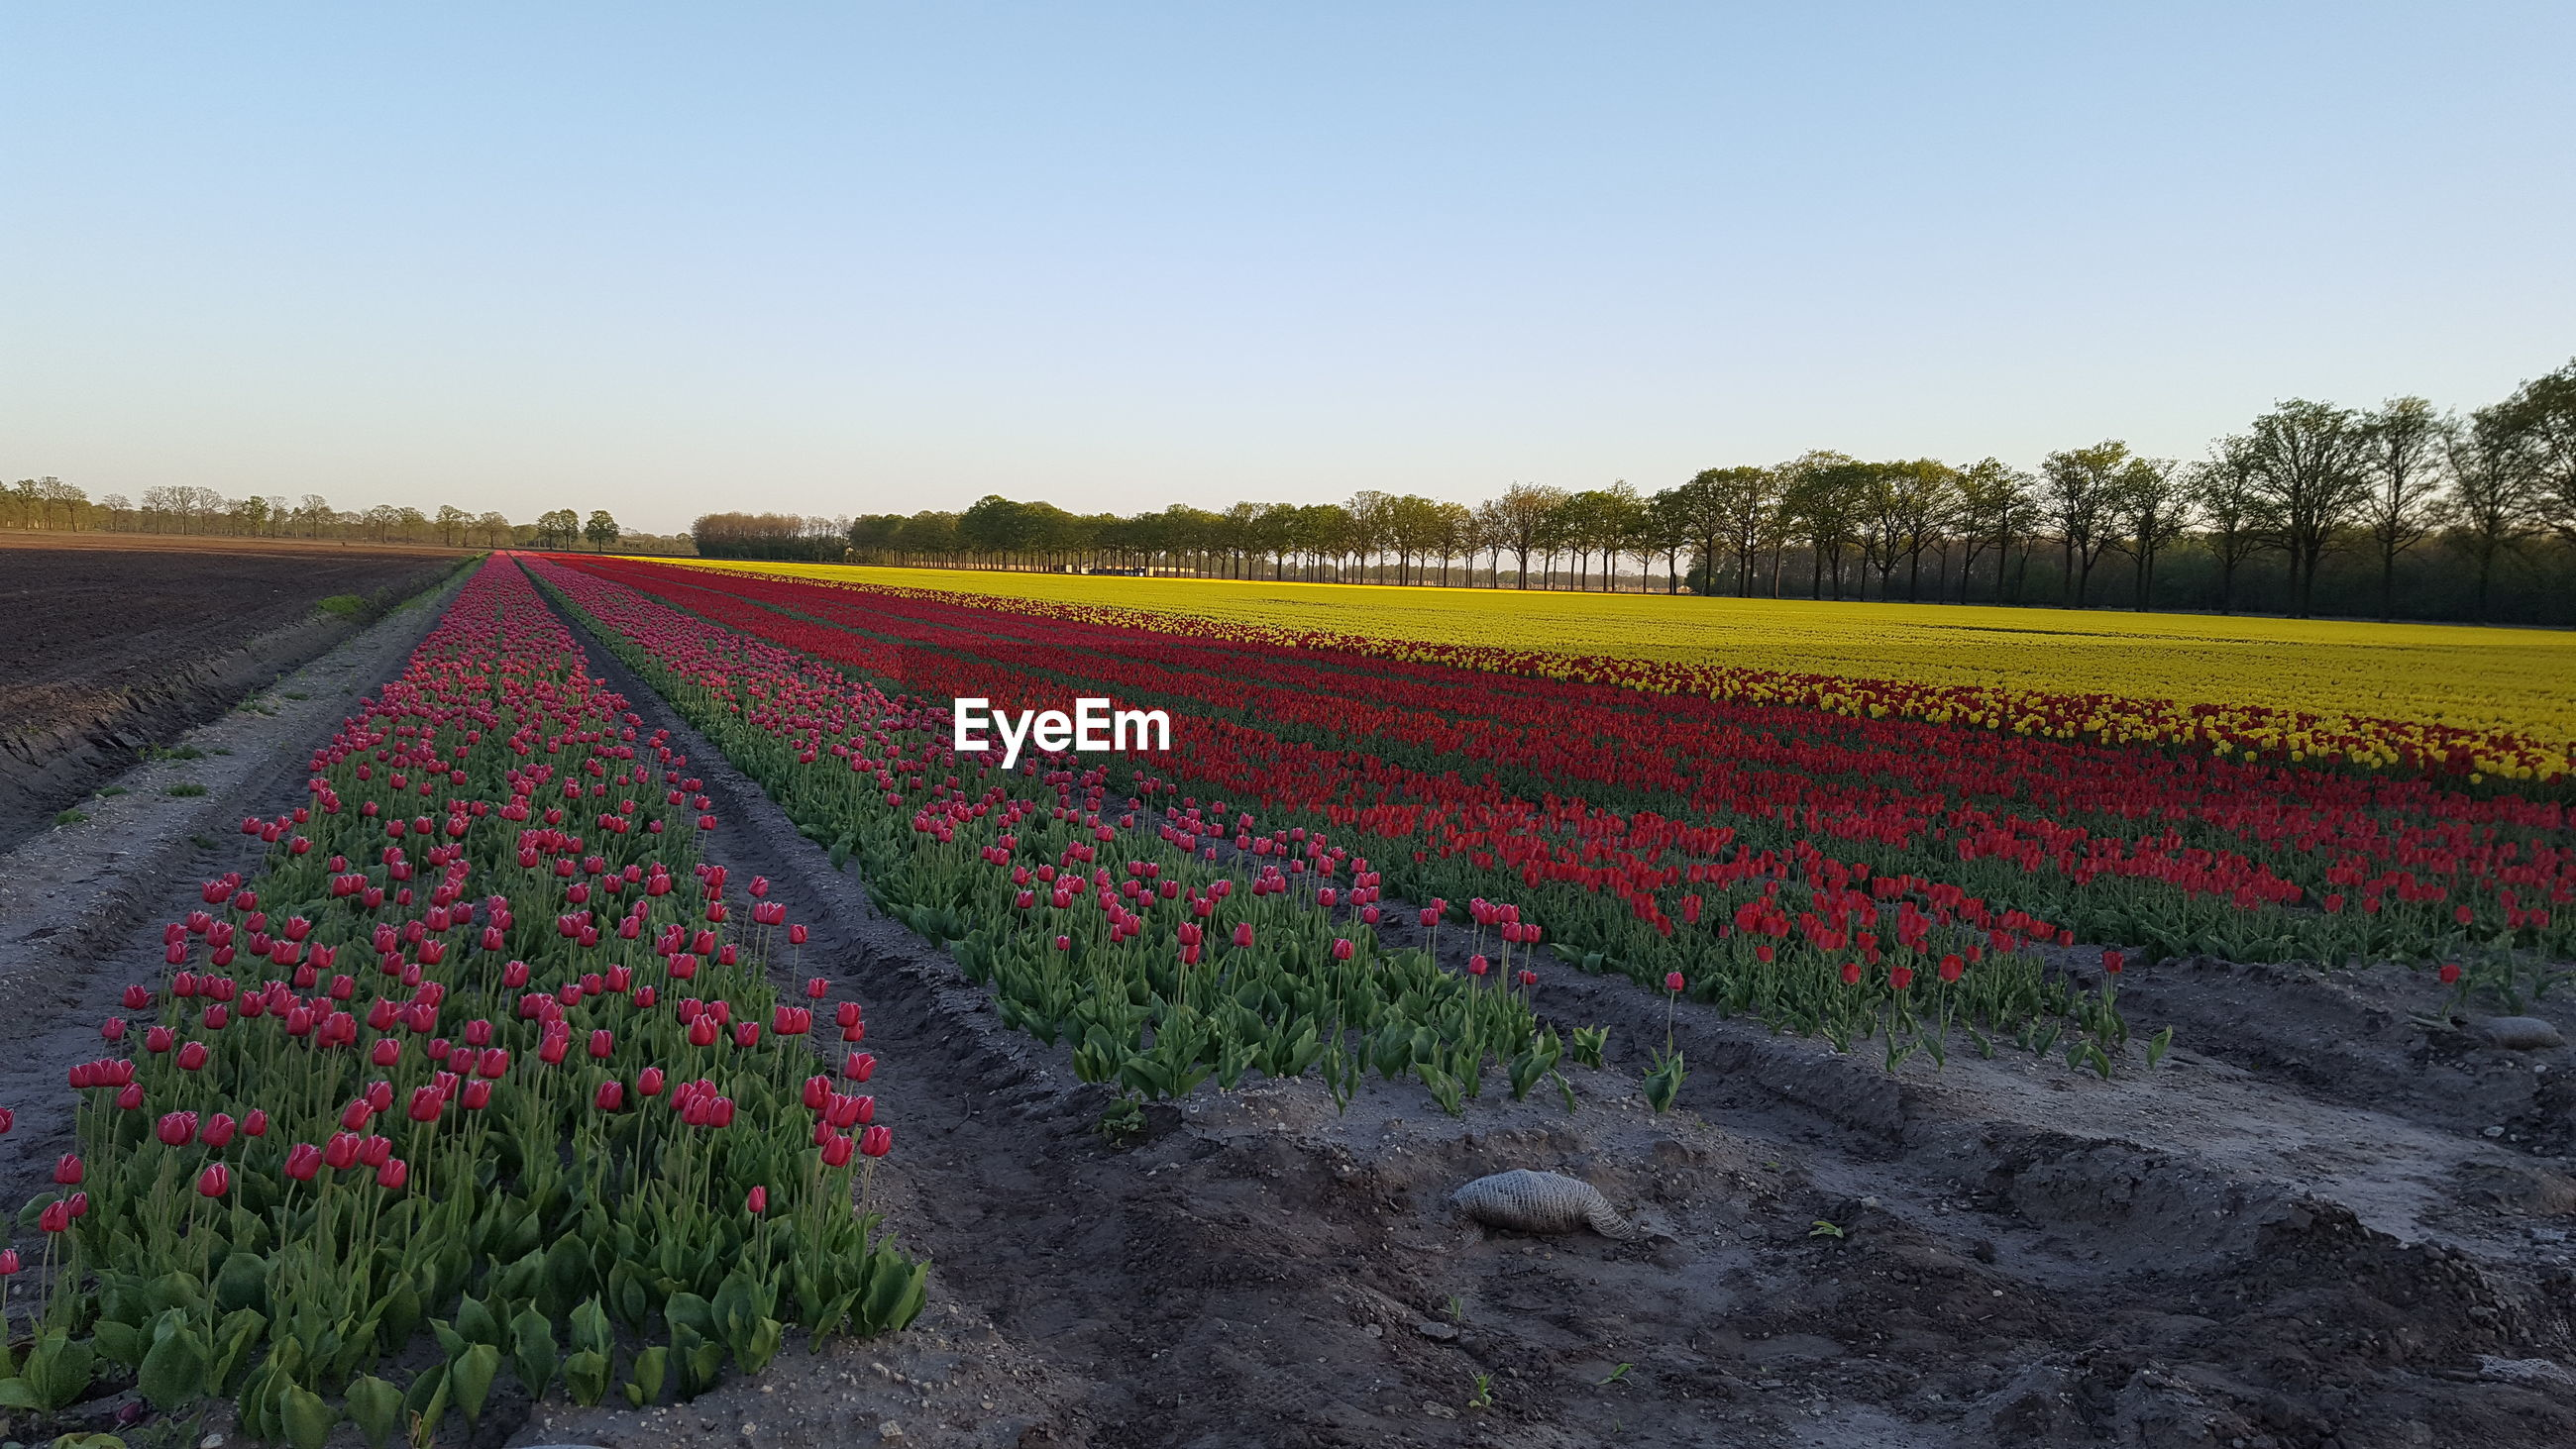 VIEW OF FLOWERING PLANTS ON FIELD AGAINST CLEAR SKY DURING SUNRISE